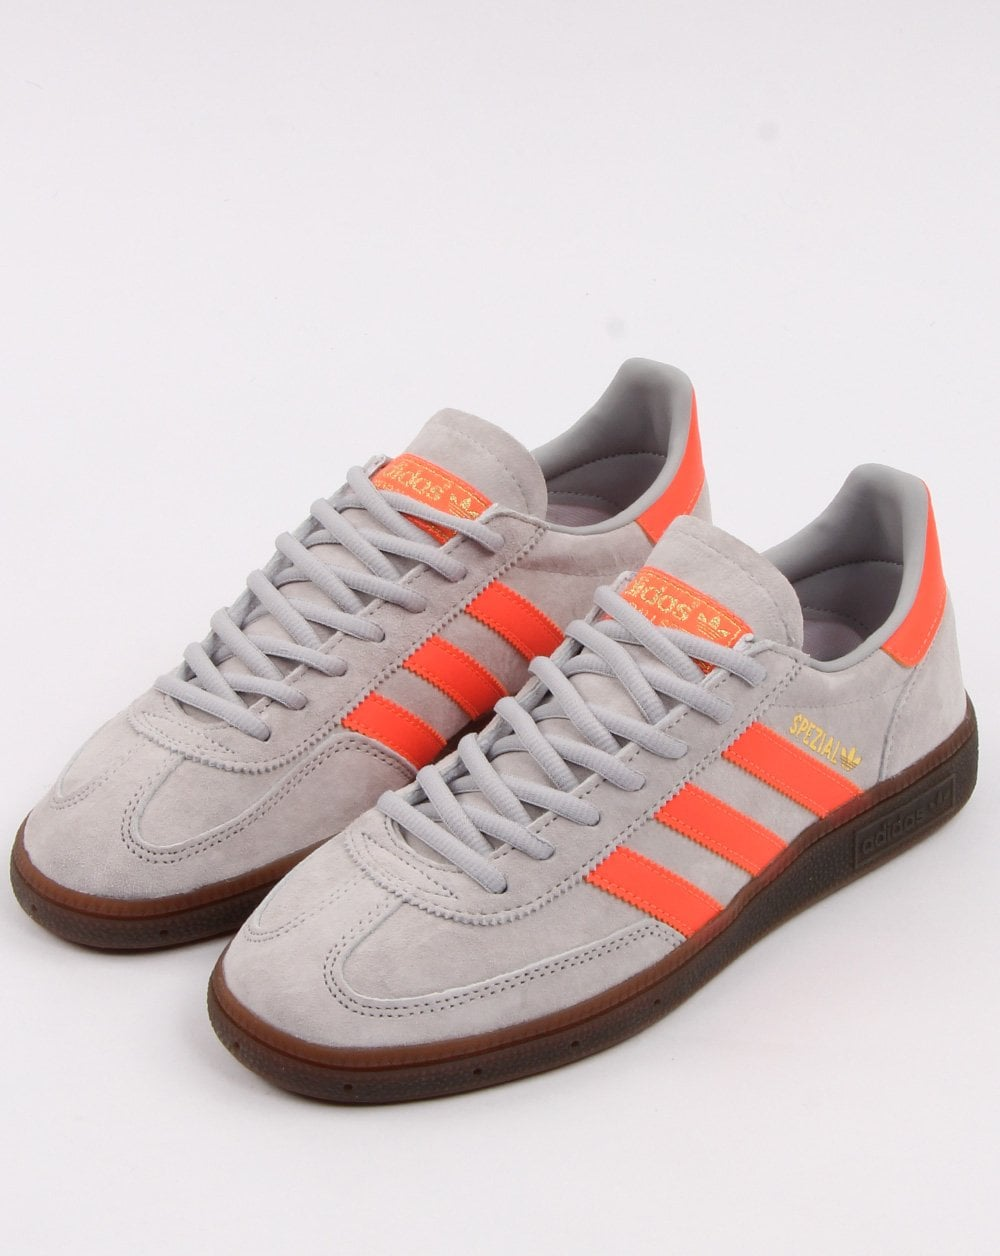 Escritor pesadilla forma  Everything You Need To Know About The adidas Handball SPEZIAL Trainer -  80's Casual Classics